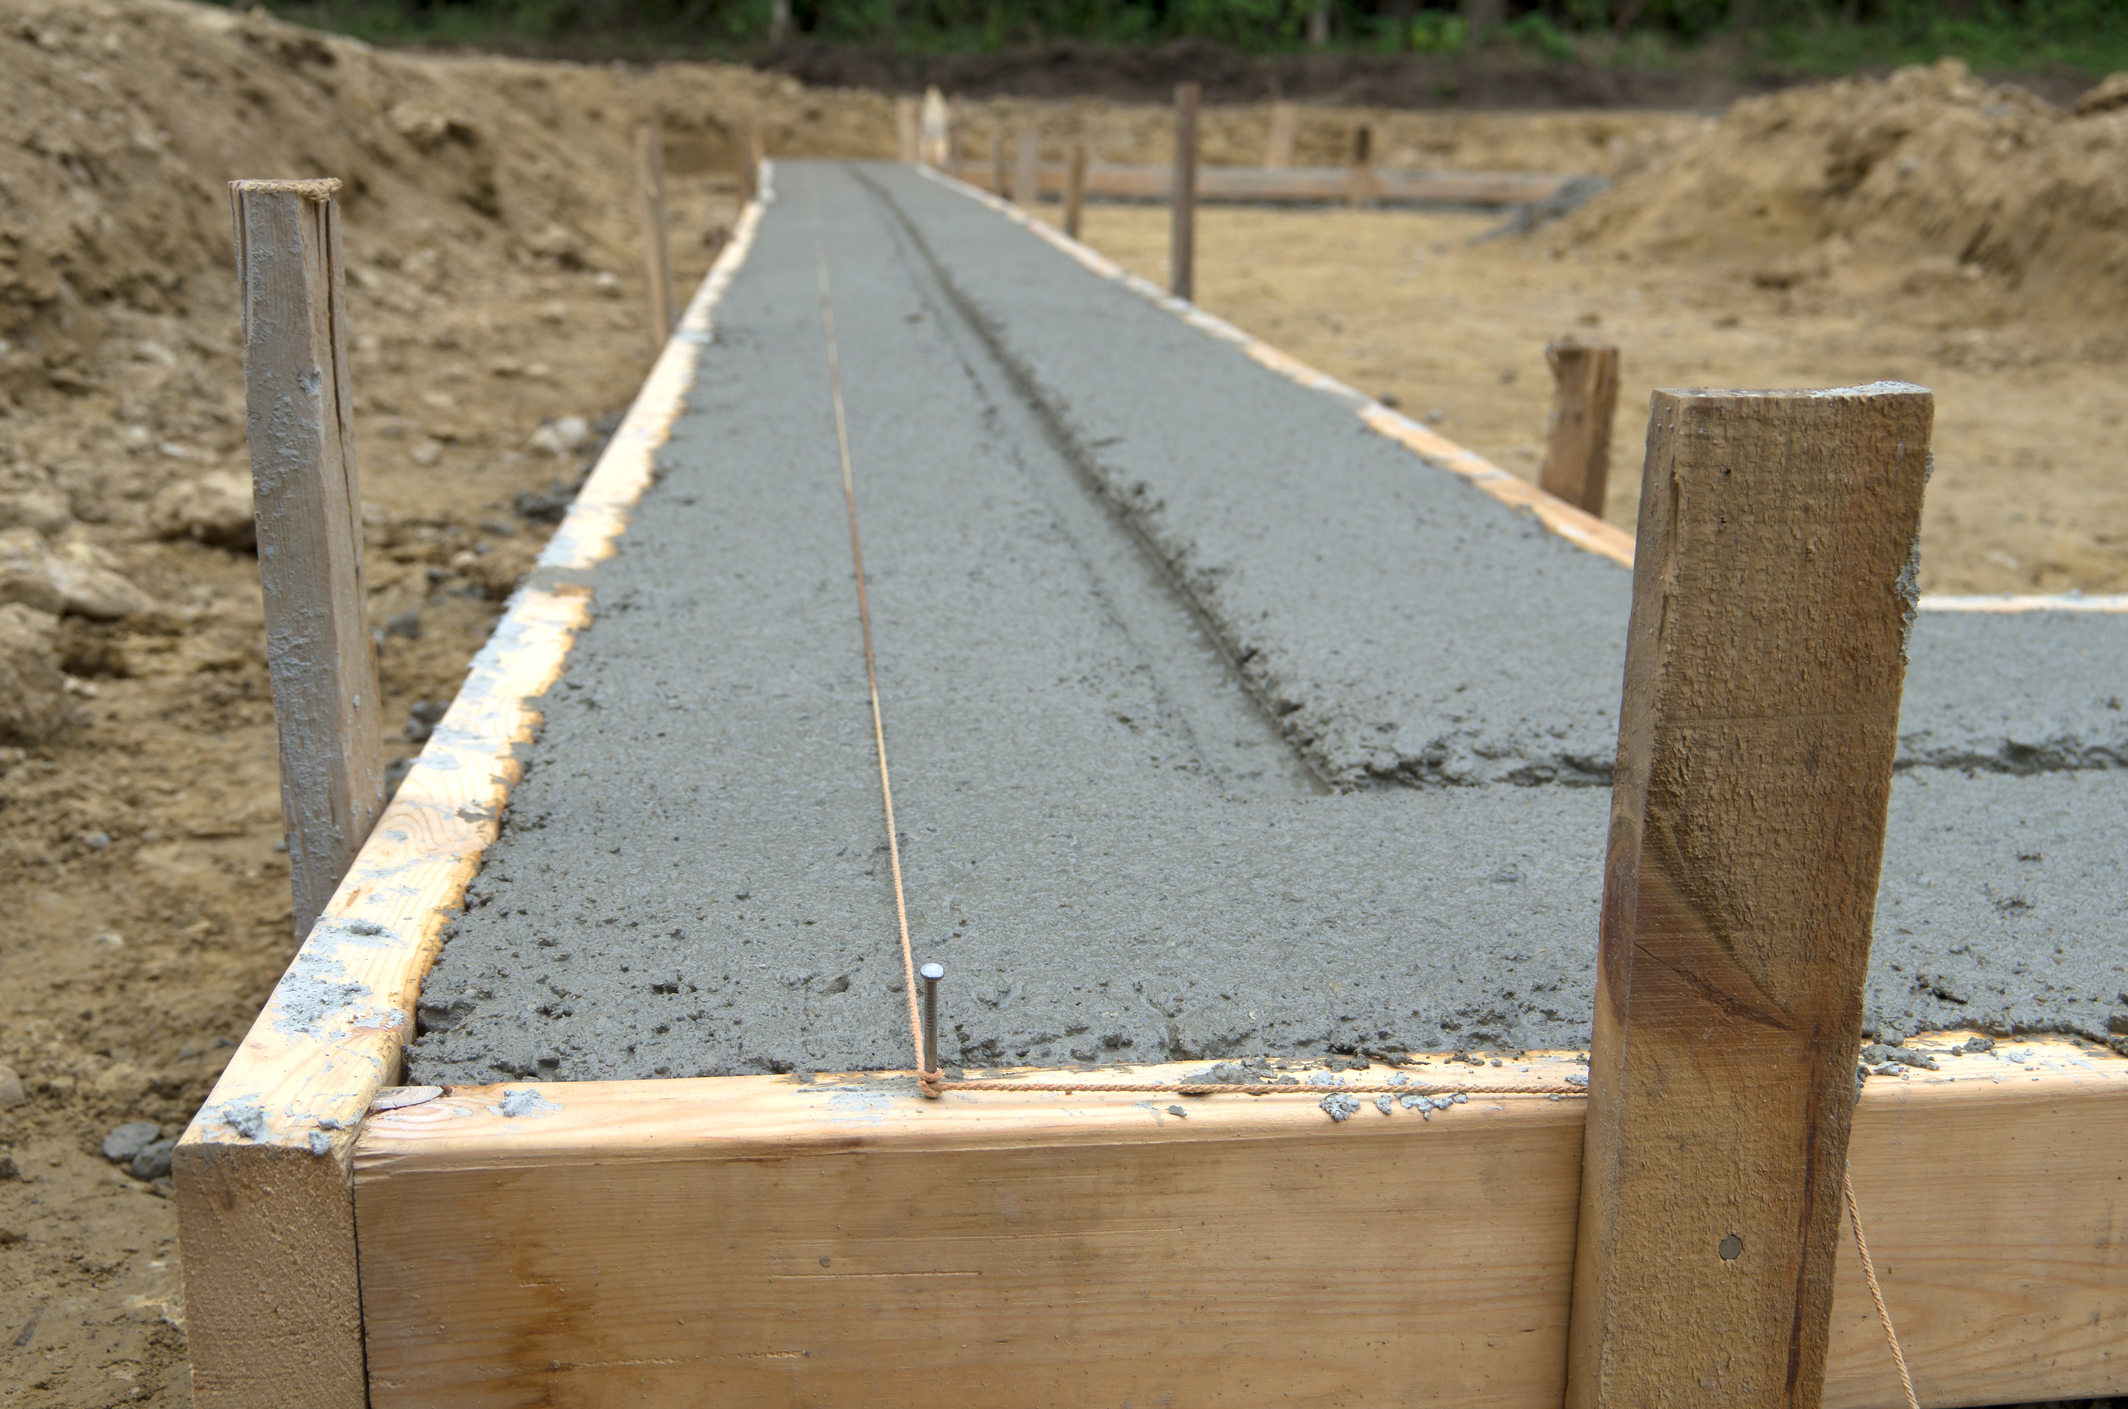 Groundworks - Groundworks - Footings, foul/storm/land drainage & harvesting systems, road construction, concrete floor slabs, concrete finishing & power floating, bulk excavation, lake excavation, agricultural/horticultural & equestrian groundworks.